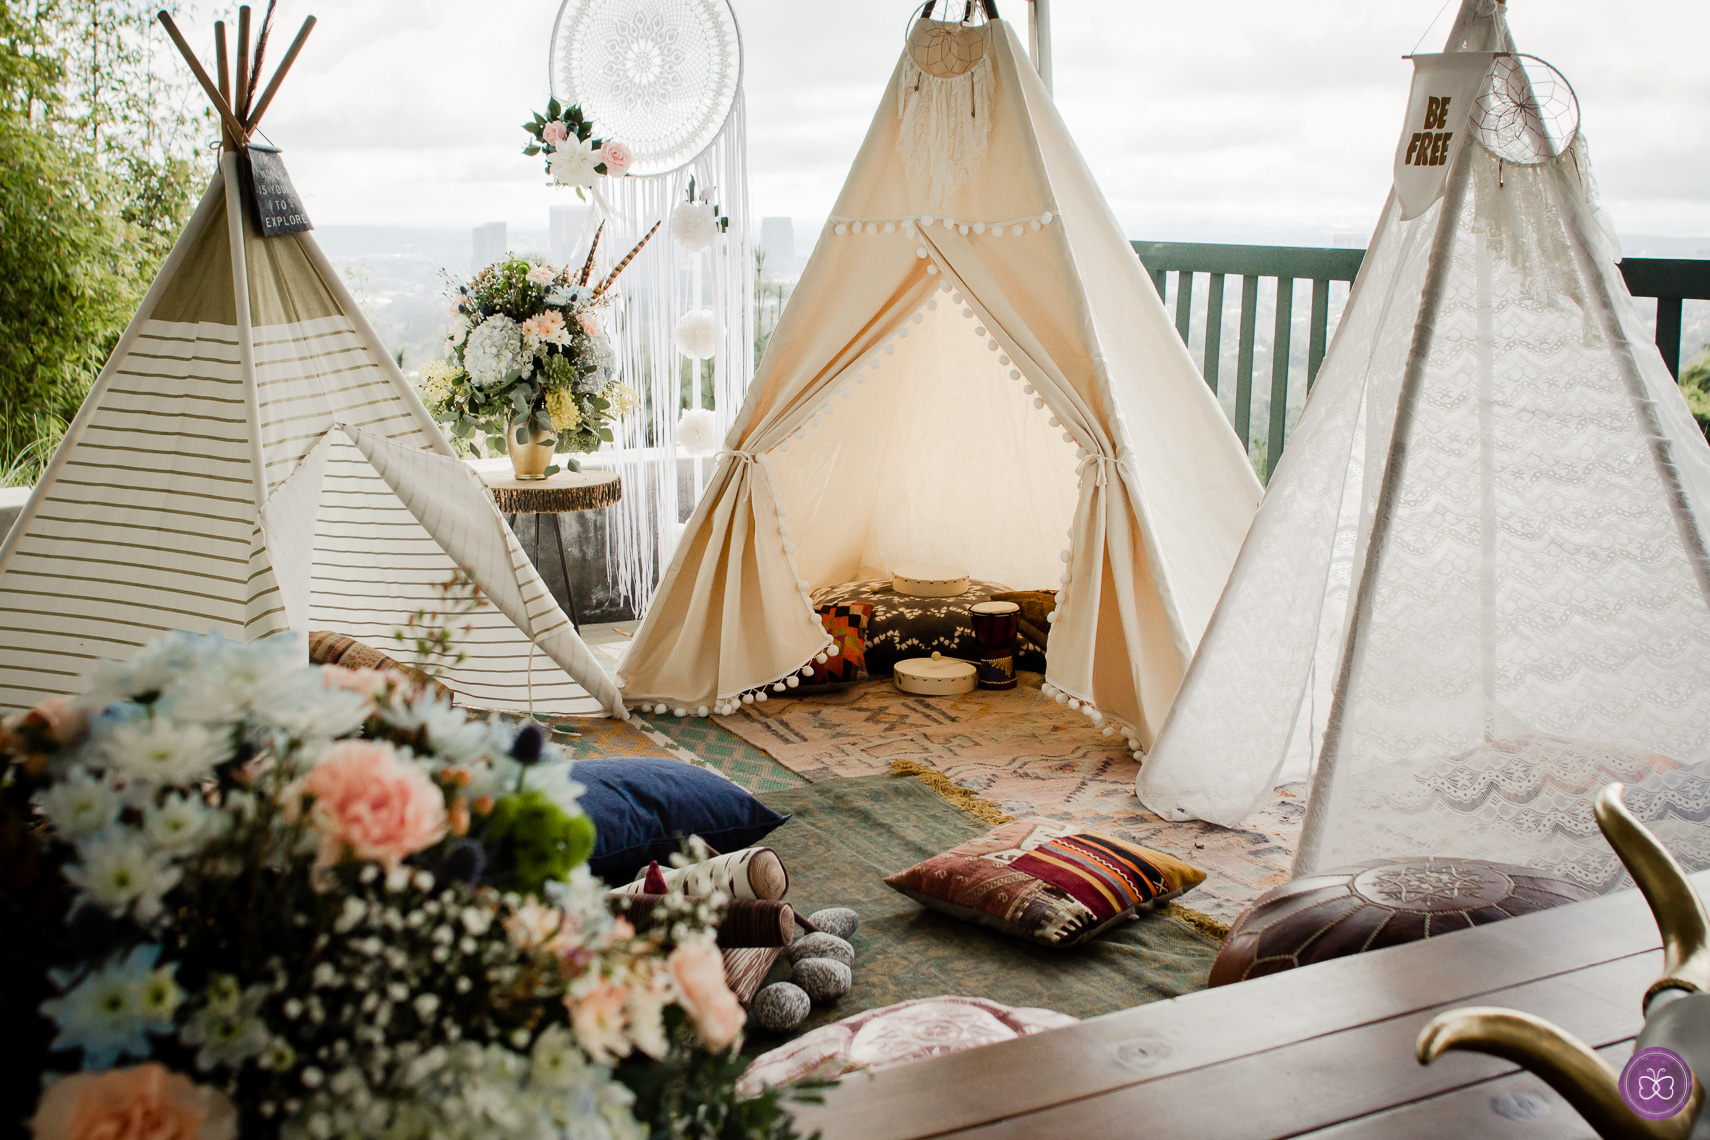 A boho chic party with it's own little tipi town for our client in Beverly Hills.